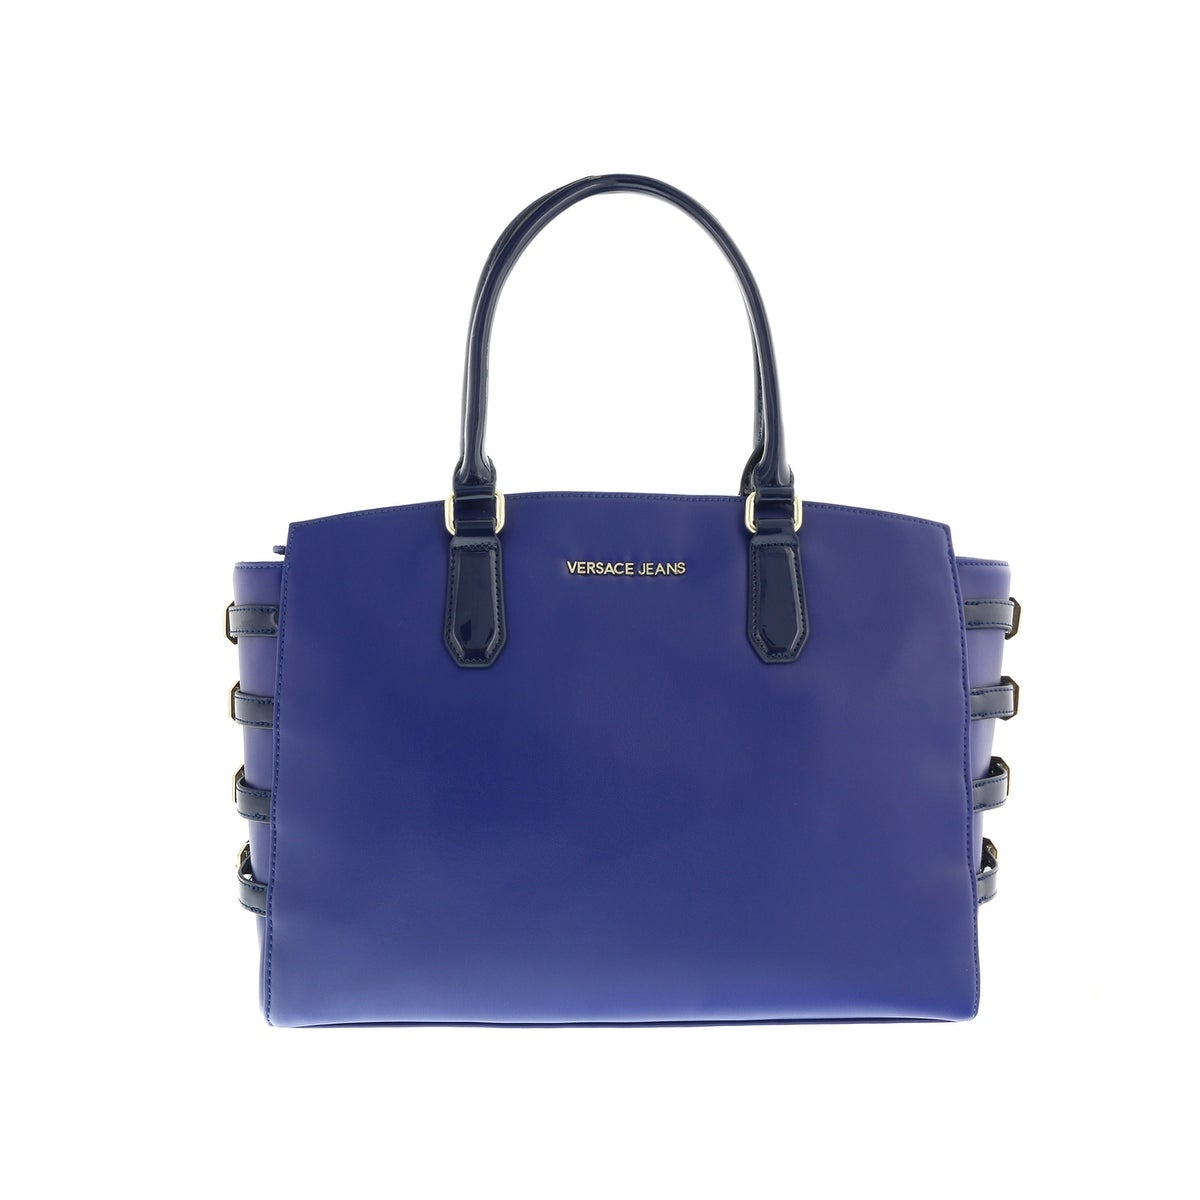 14fd3ceb0fd7 Shop Versace EE1VOBBE2 E240 Prussian Blue Satchel Shoulder Bag - prussian  blue - 15-11-7 - Free Shipping Today - Overstock.com - 17306191